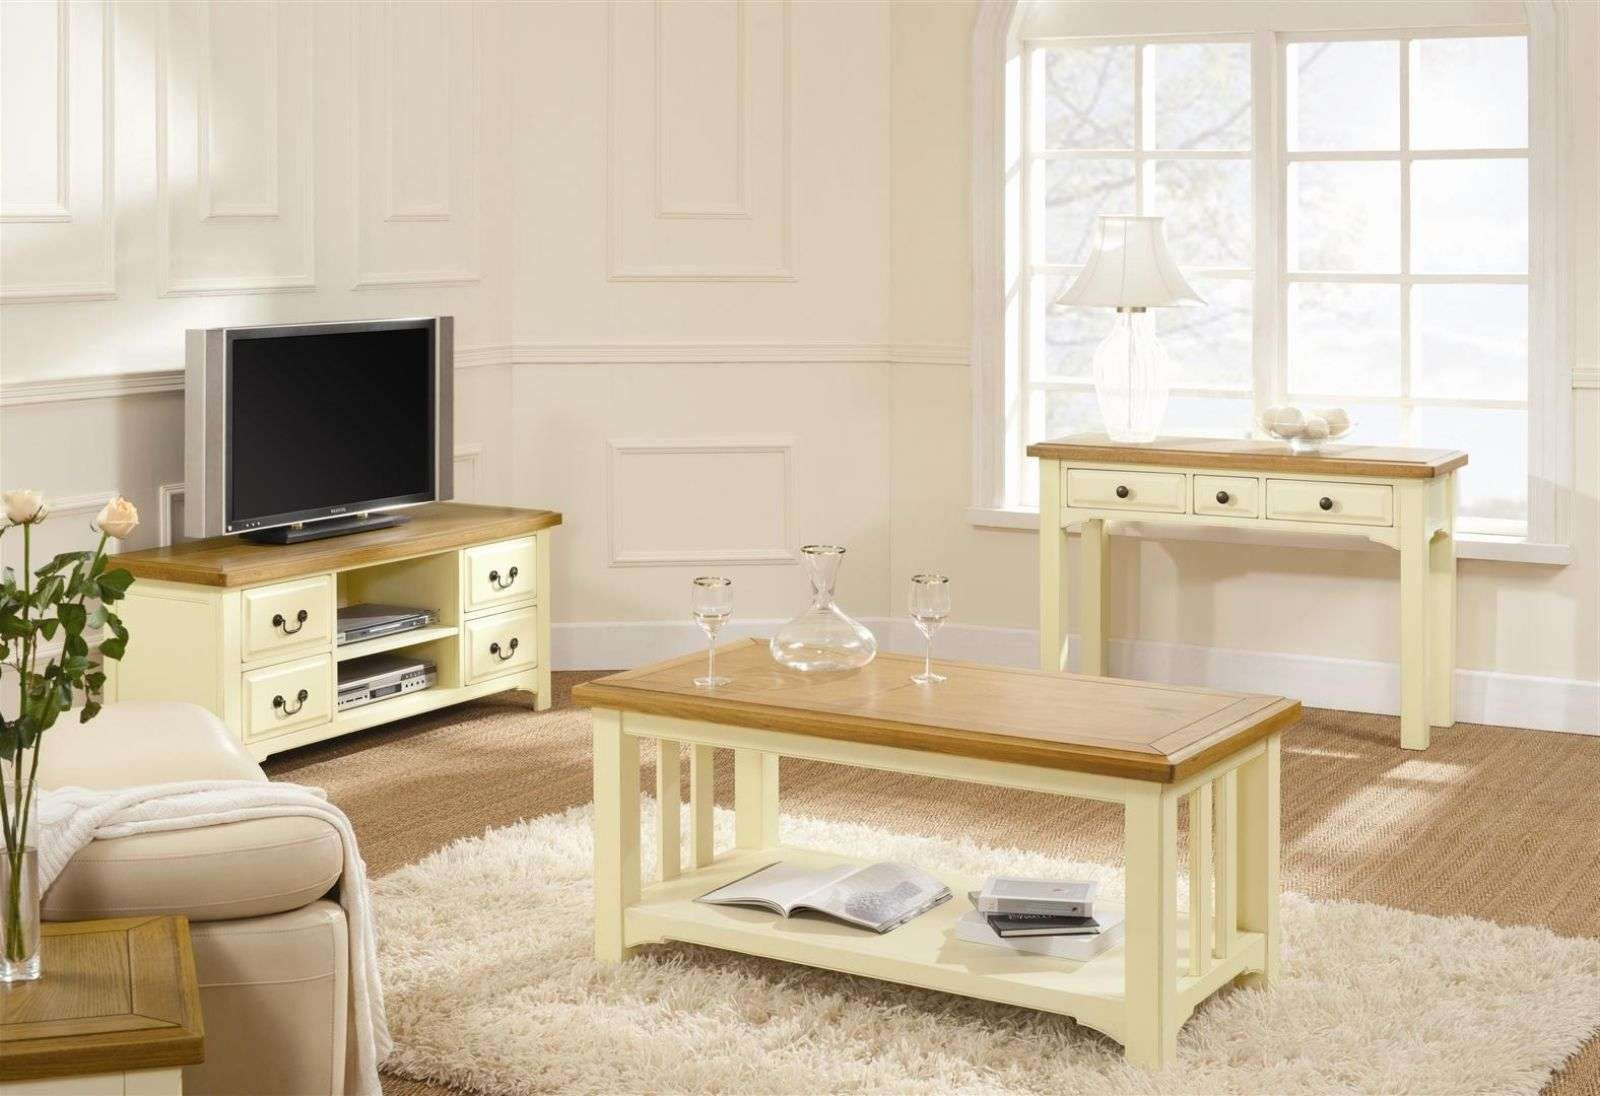 Sandringham Oak & Cream Coffee Table Cream Coffee Table With Glass Intended For Favorite Oak And Cream Coffee Tables (View 6 of 20)